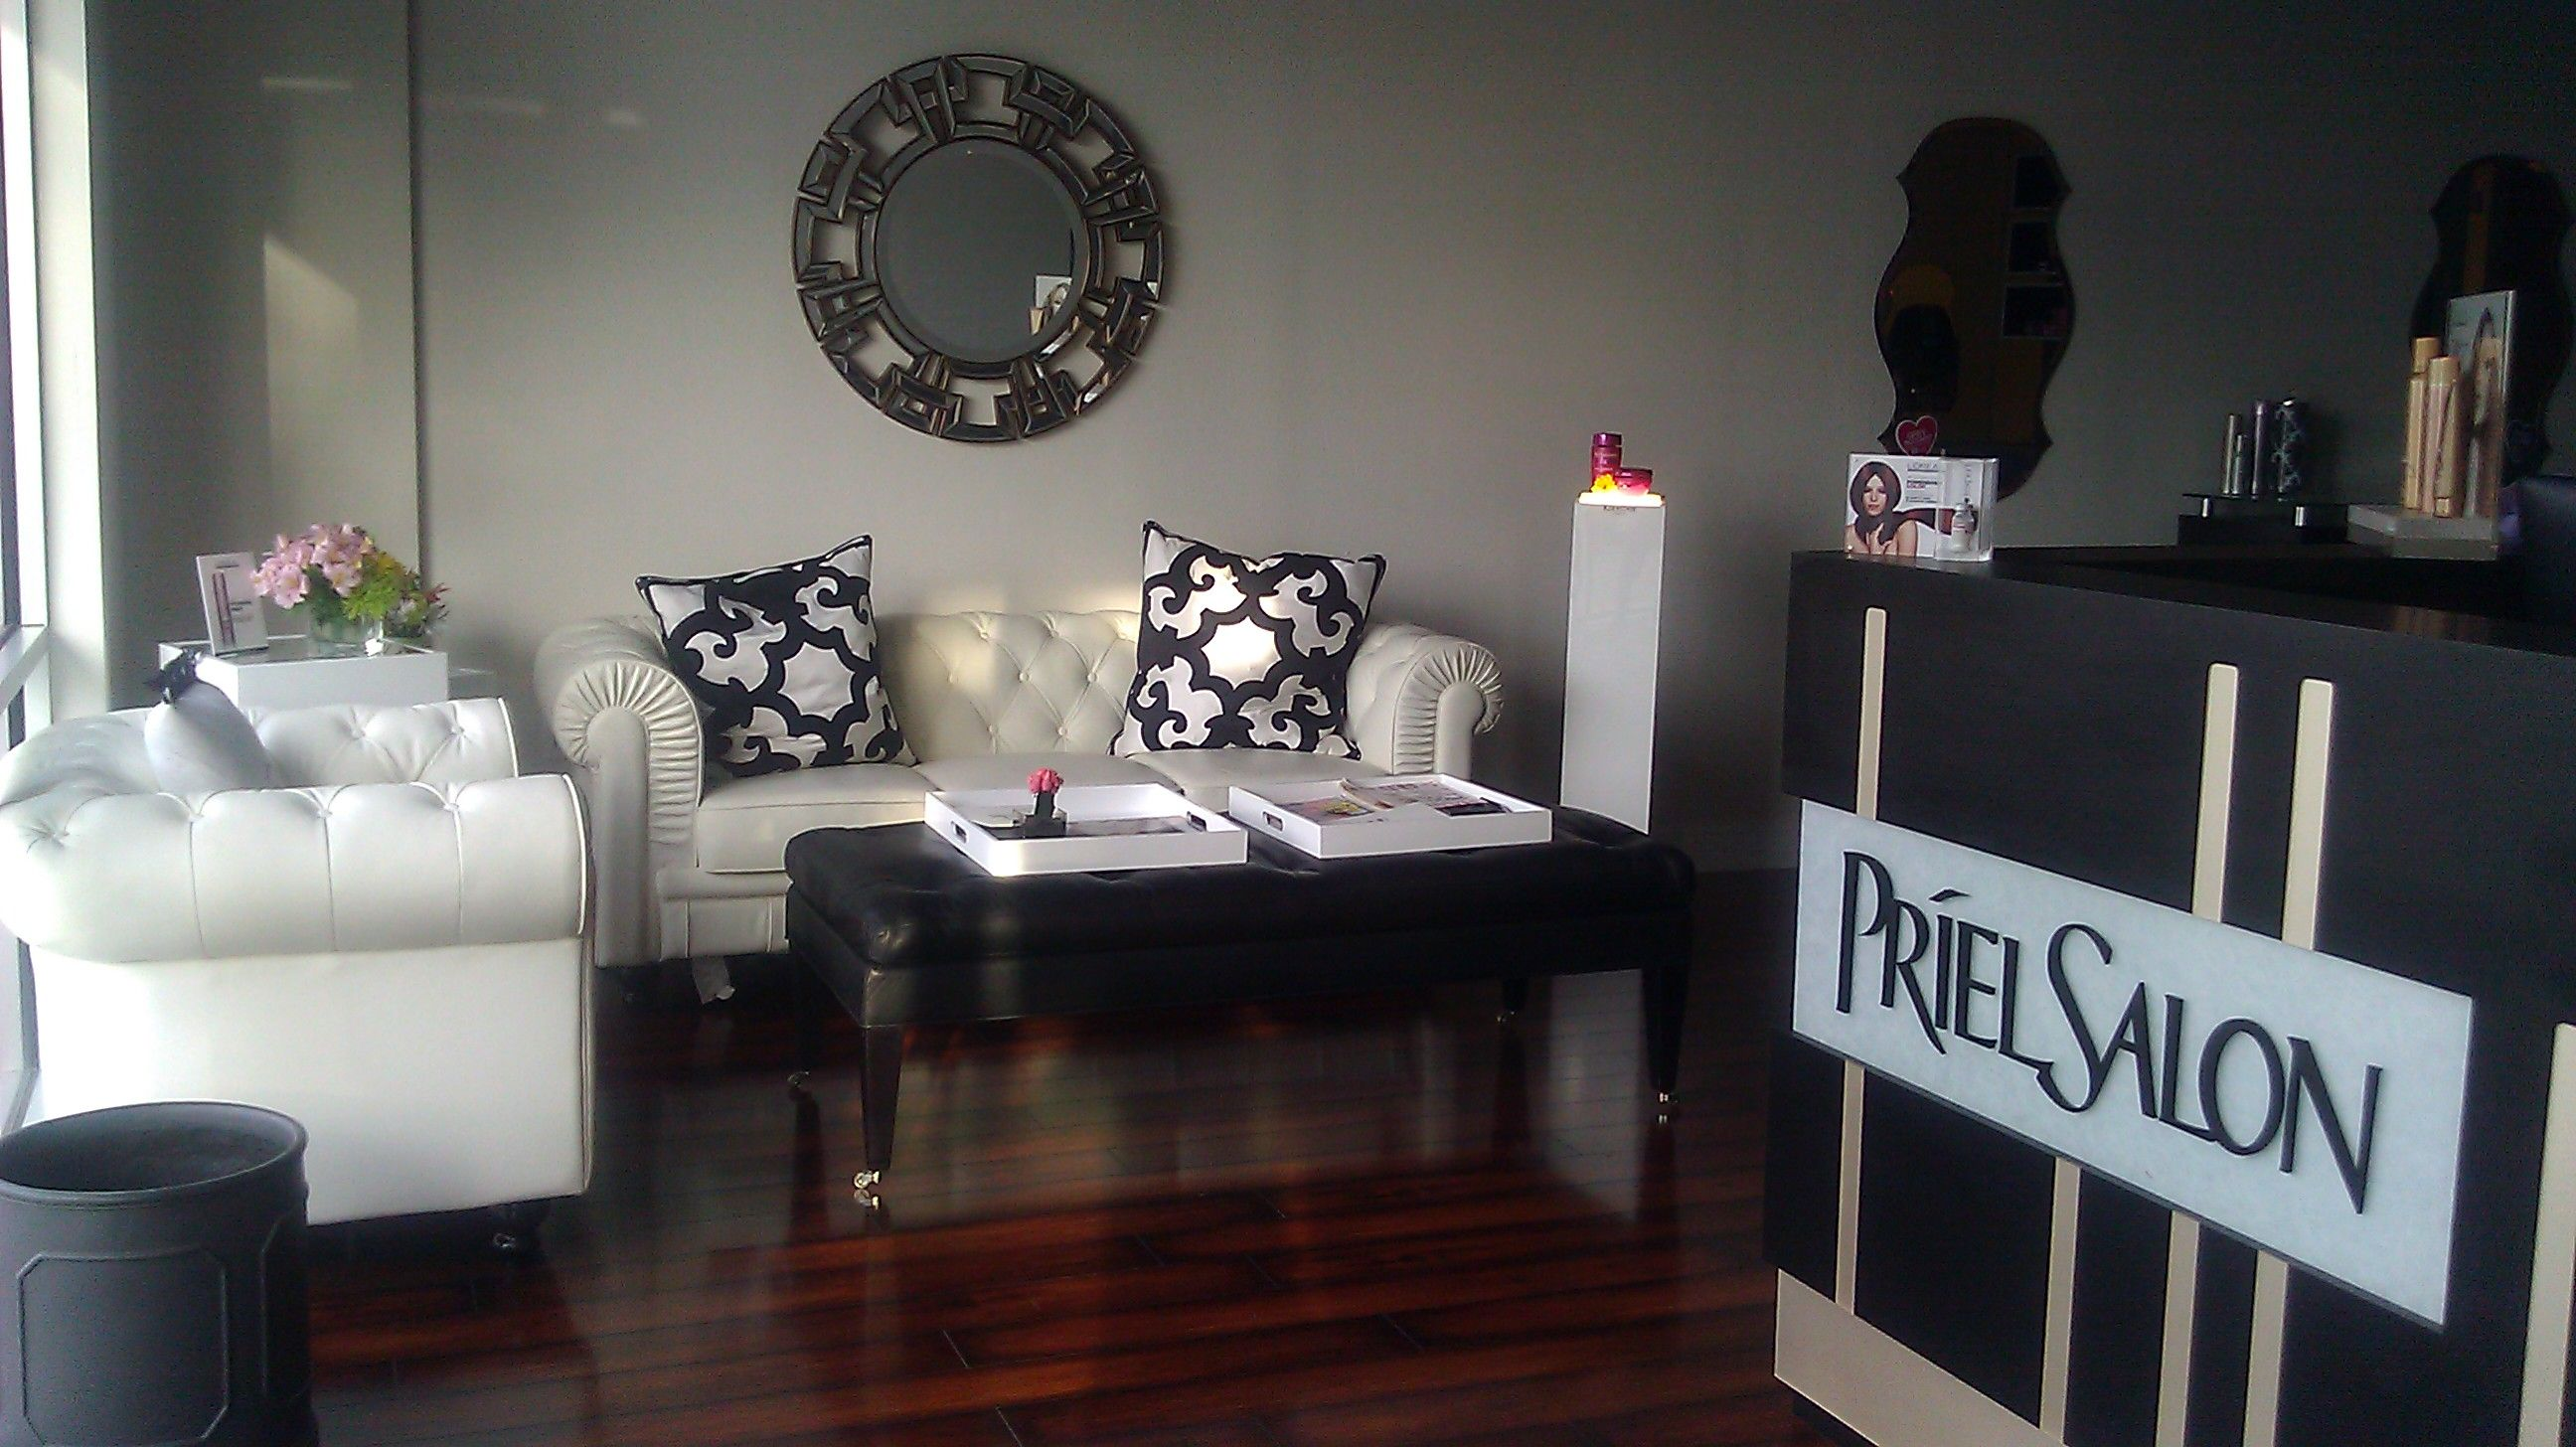 Priel Salon Waiting Area Front Desk Www Prielsalon Com